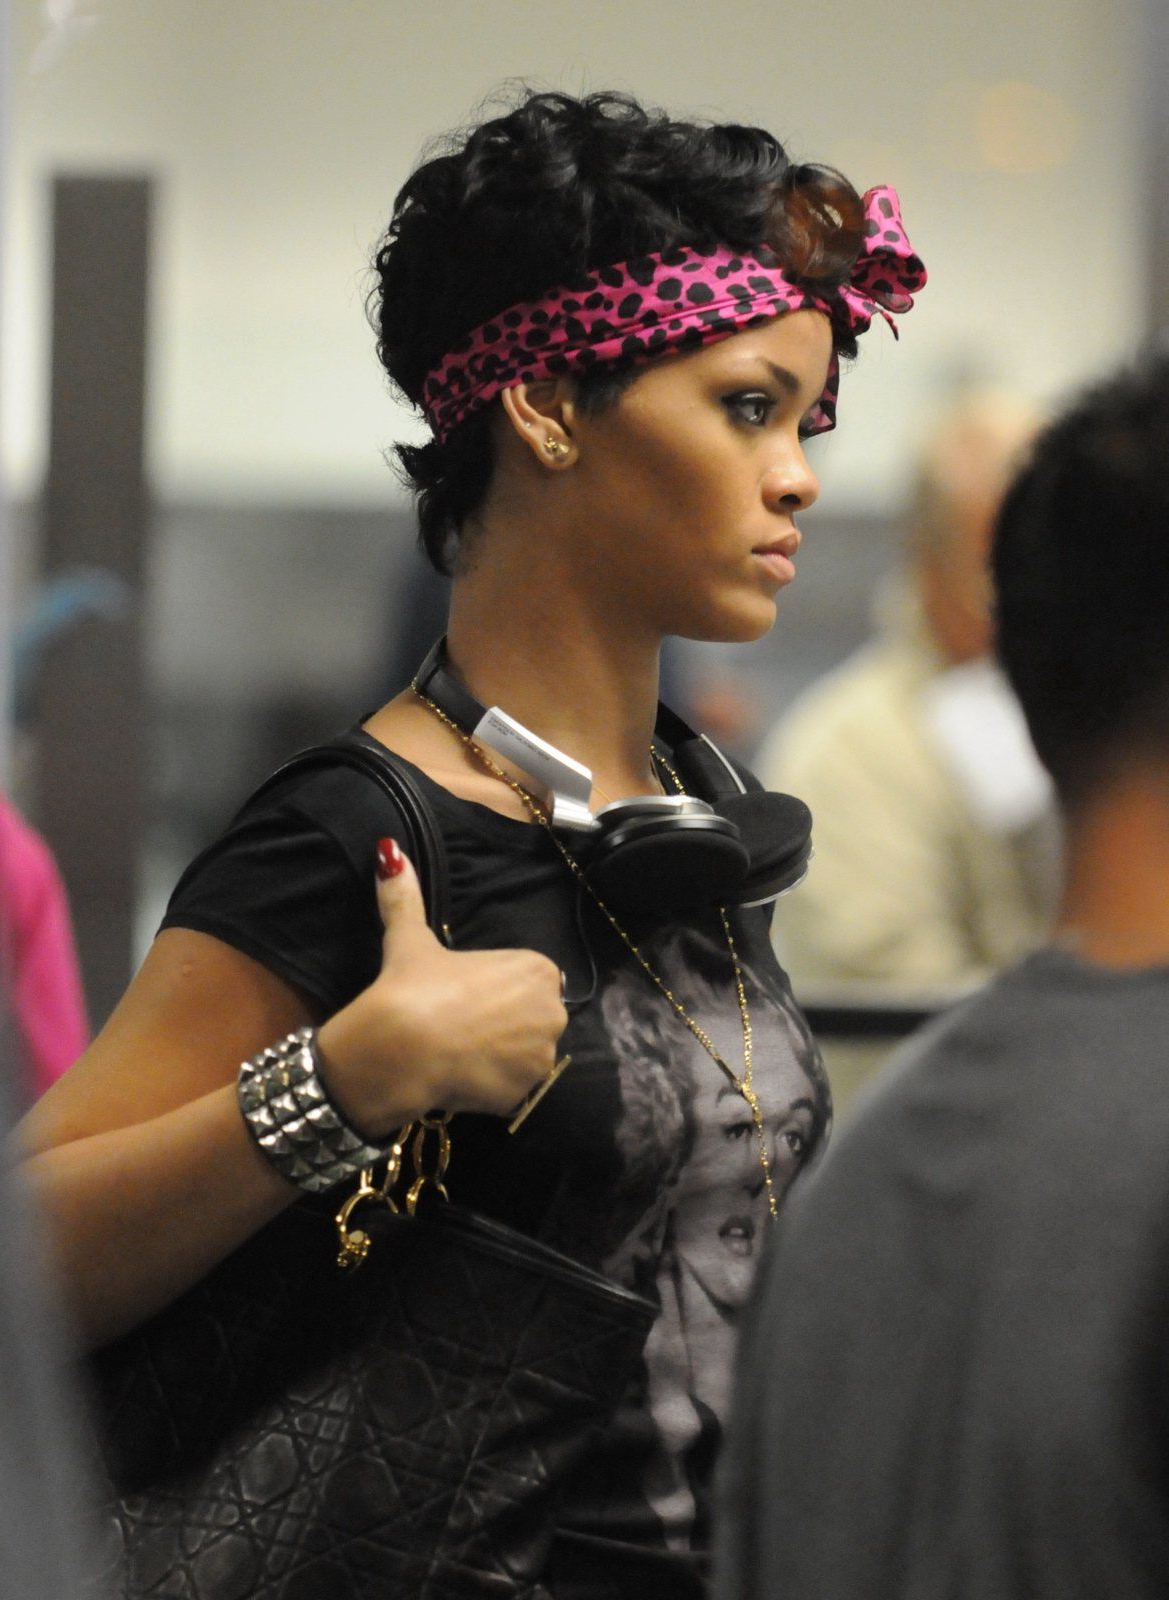 Rihanna Headband With Short Hair | Head Wraps | Pinterest | Hair For Cute Short Hairstyles With Headbands (View 9 of 25)